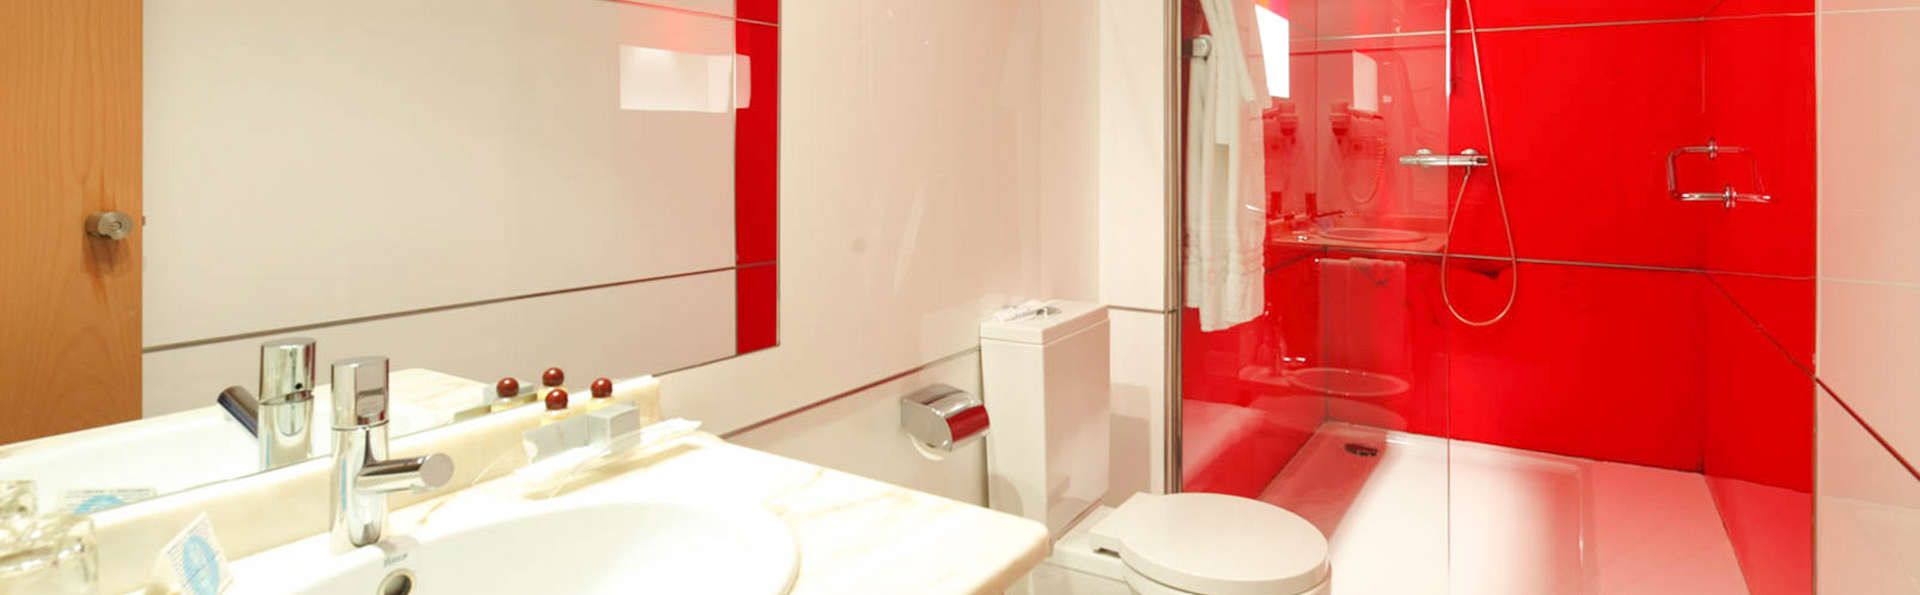 Hotel Spa Congreso - EDIT_BATHROOM_01.jpg